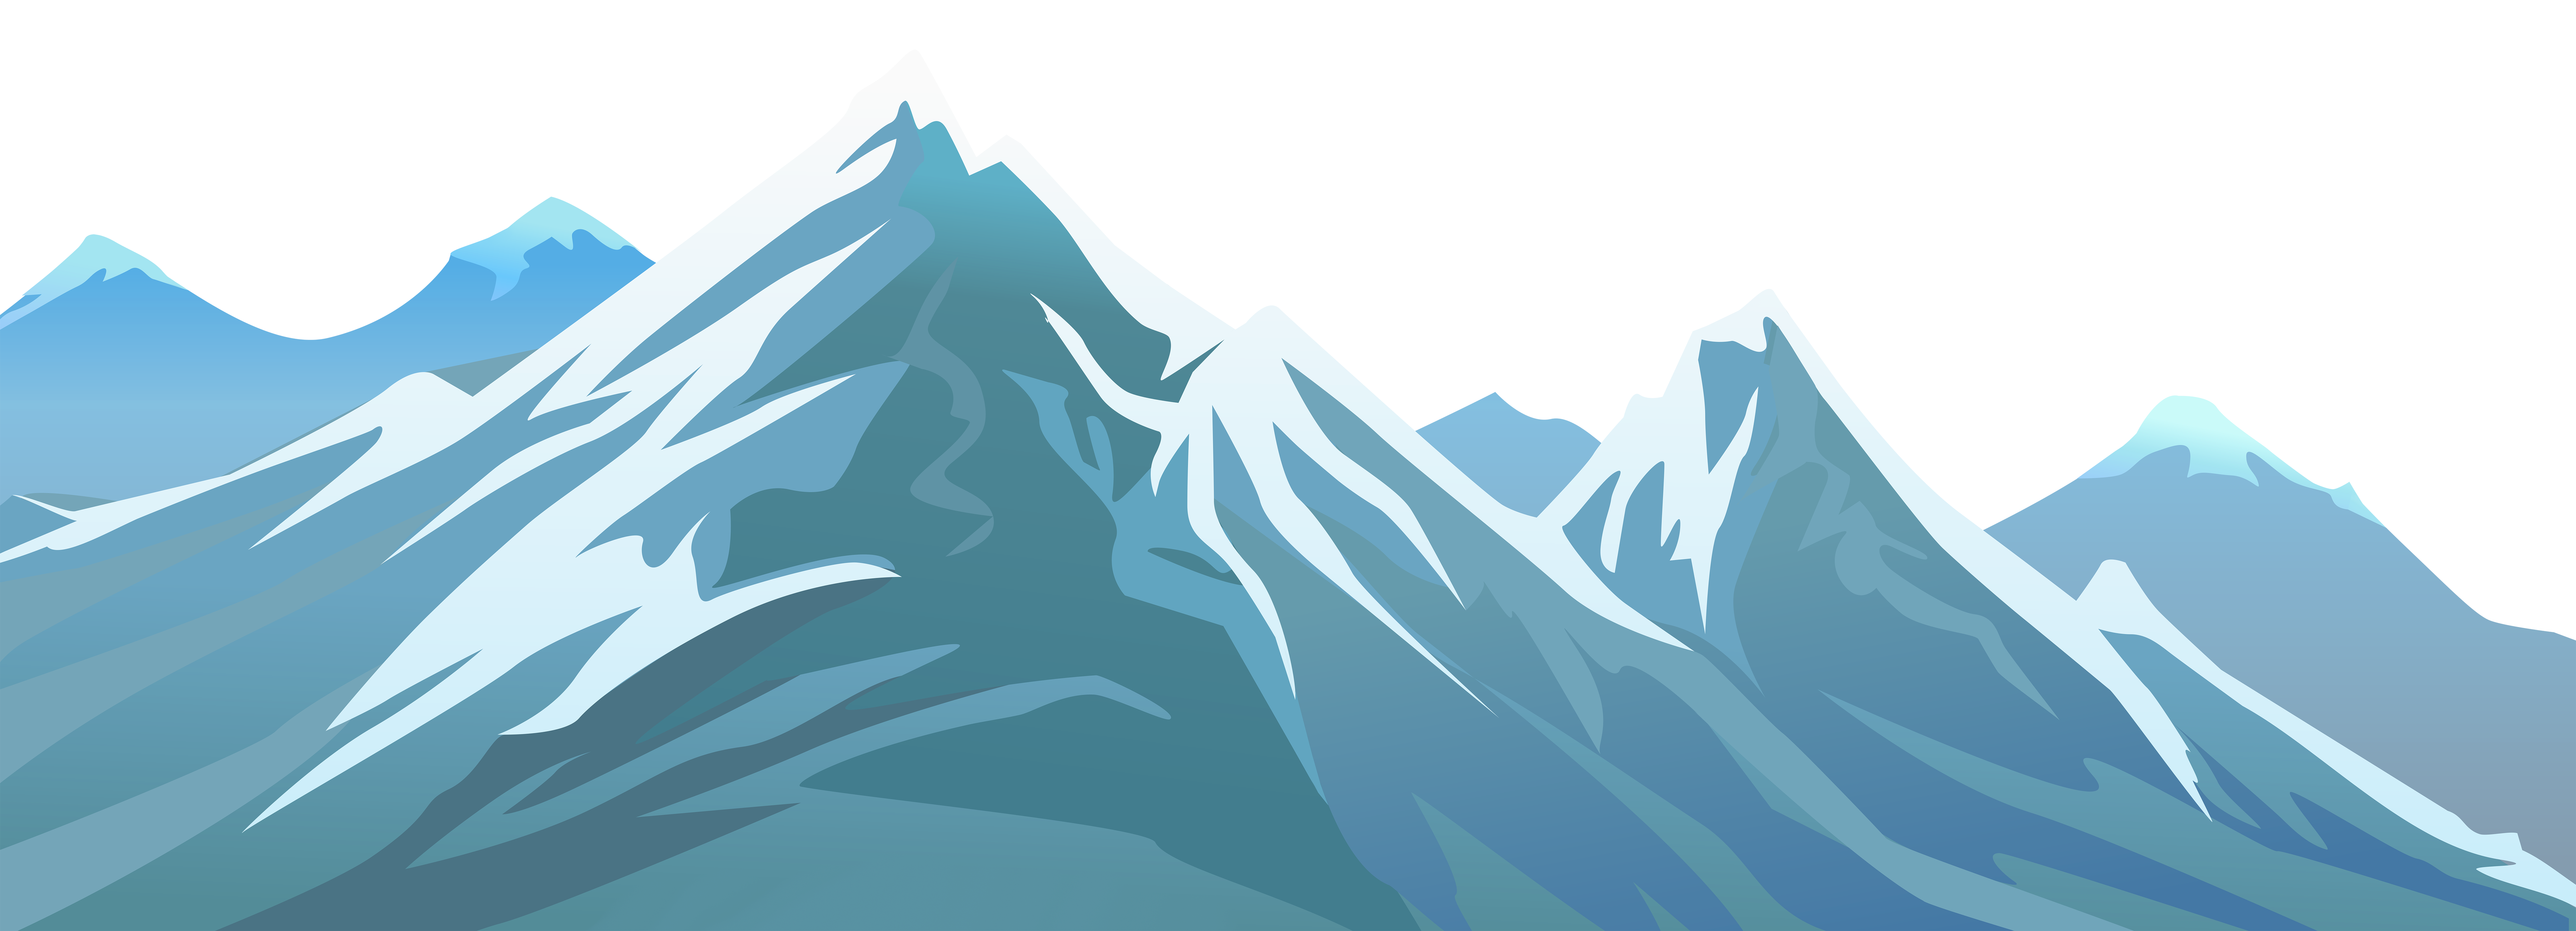 Snowy mountain transparent png. Mountains clipart image free stock